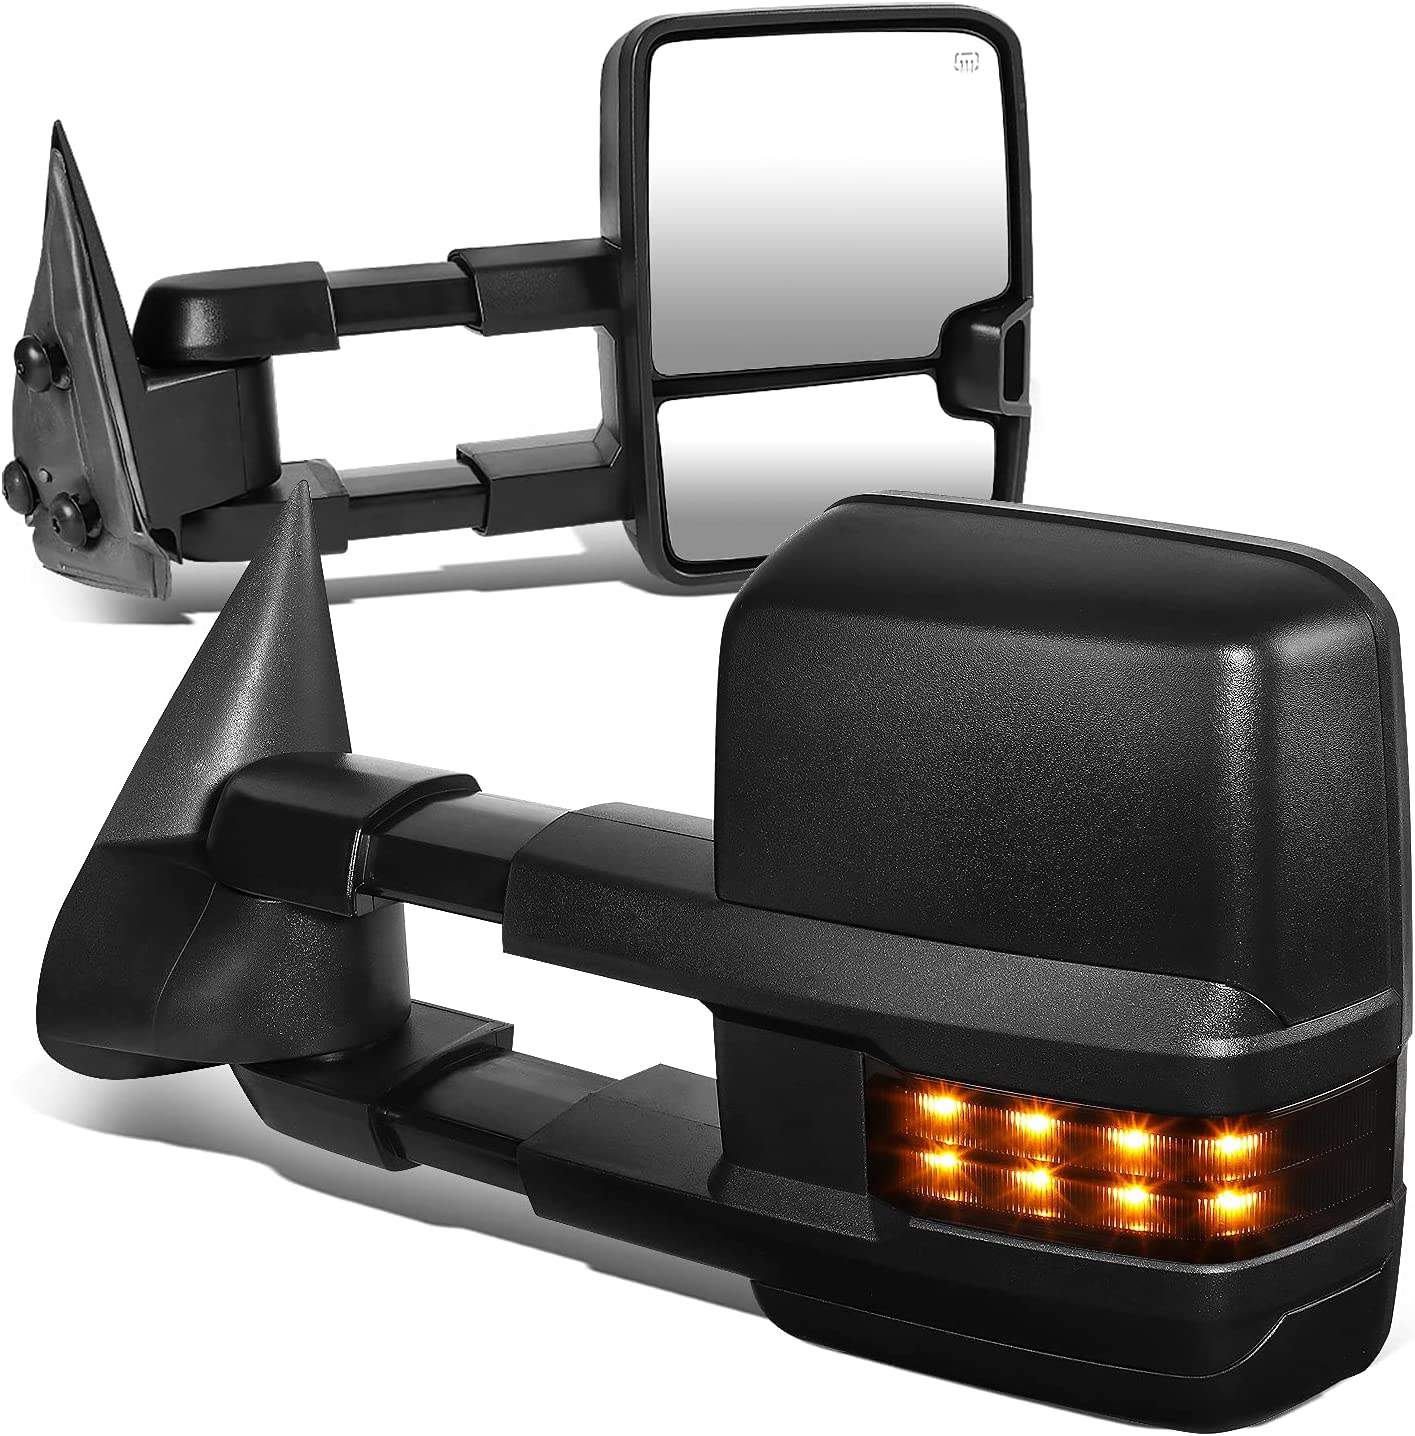 DNA Motoring TWM-015-T888-BK-SM Pair Towing W Max 59% OFF Mirrors 25% OFF Compatible